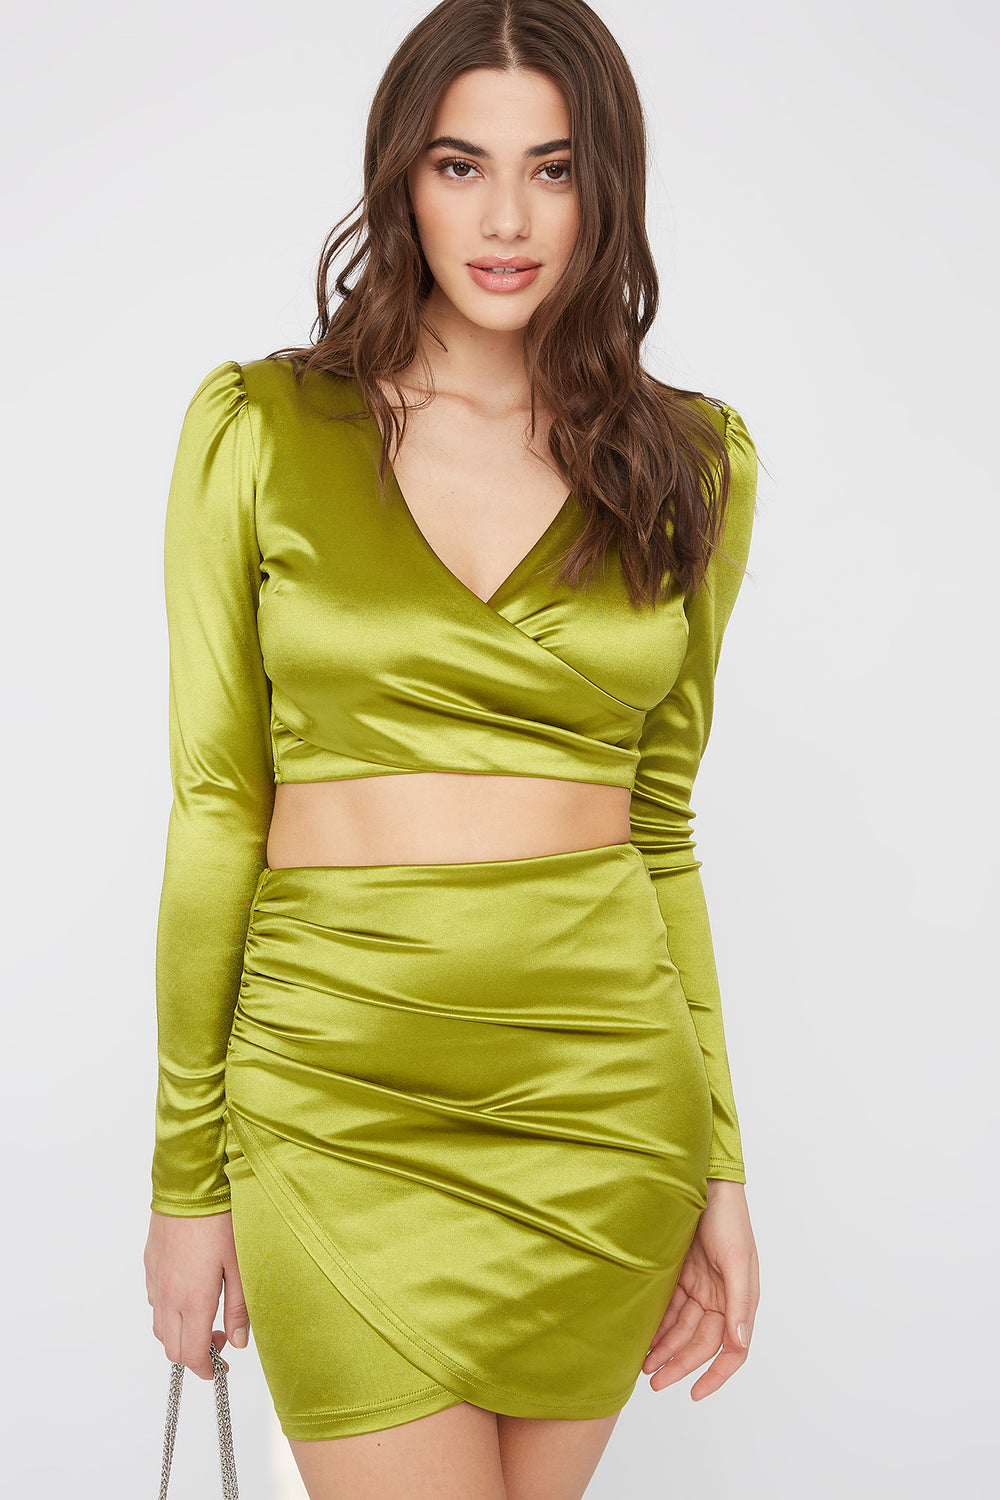 Satin Solid Tulip Mini Skirt Neon Green